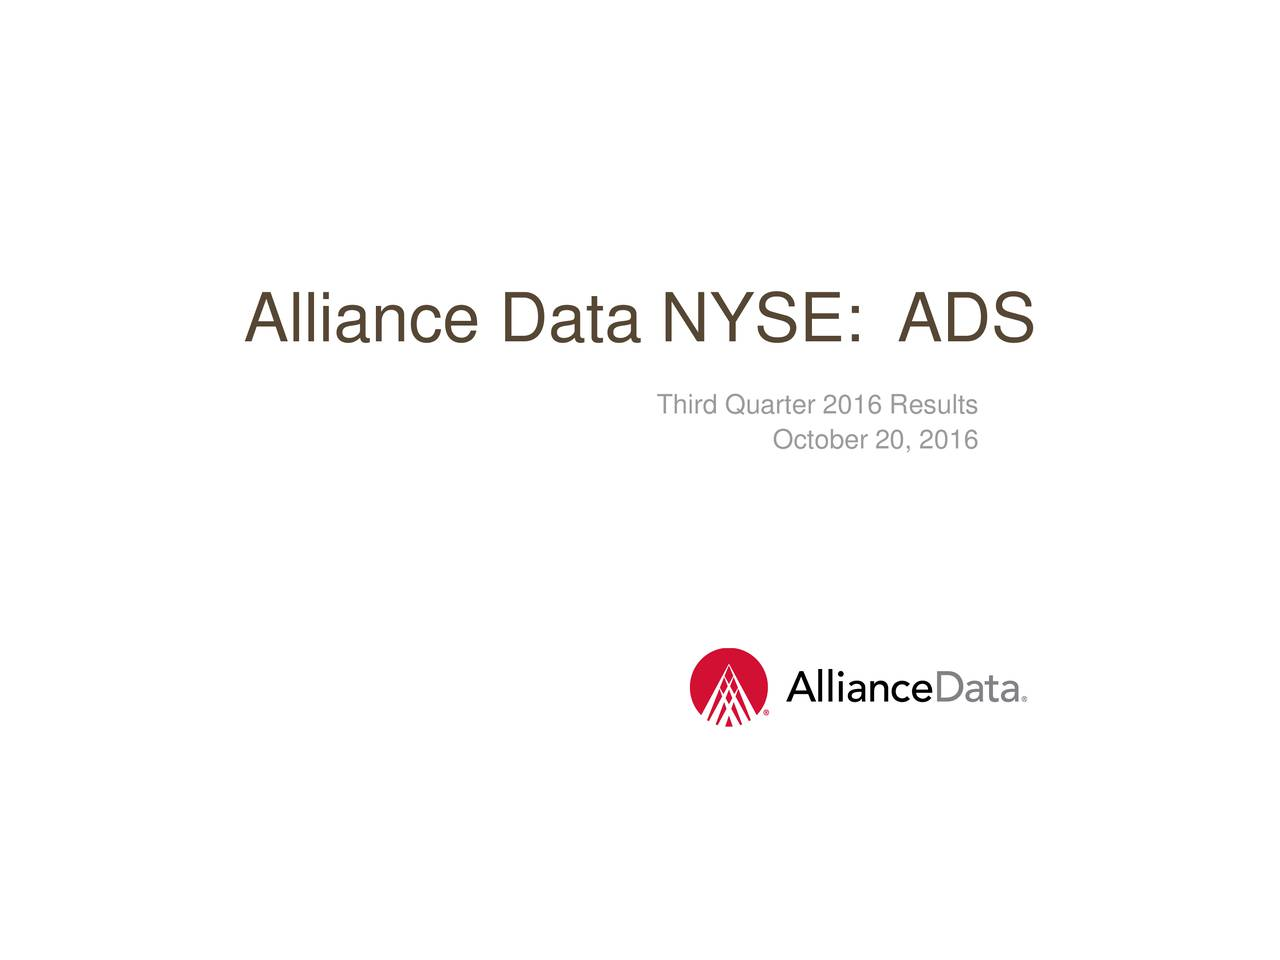 Alliance Data NYSE: ADS Third Quarter 2016 Results October 20, 2016 Confidential and Proprietaryems, Inc.